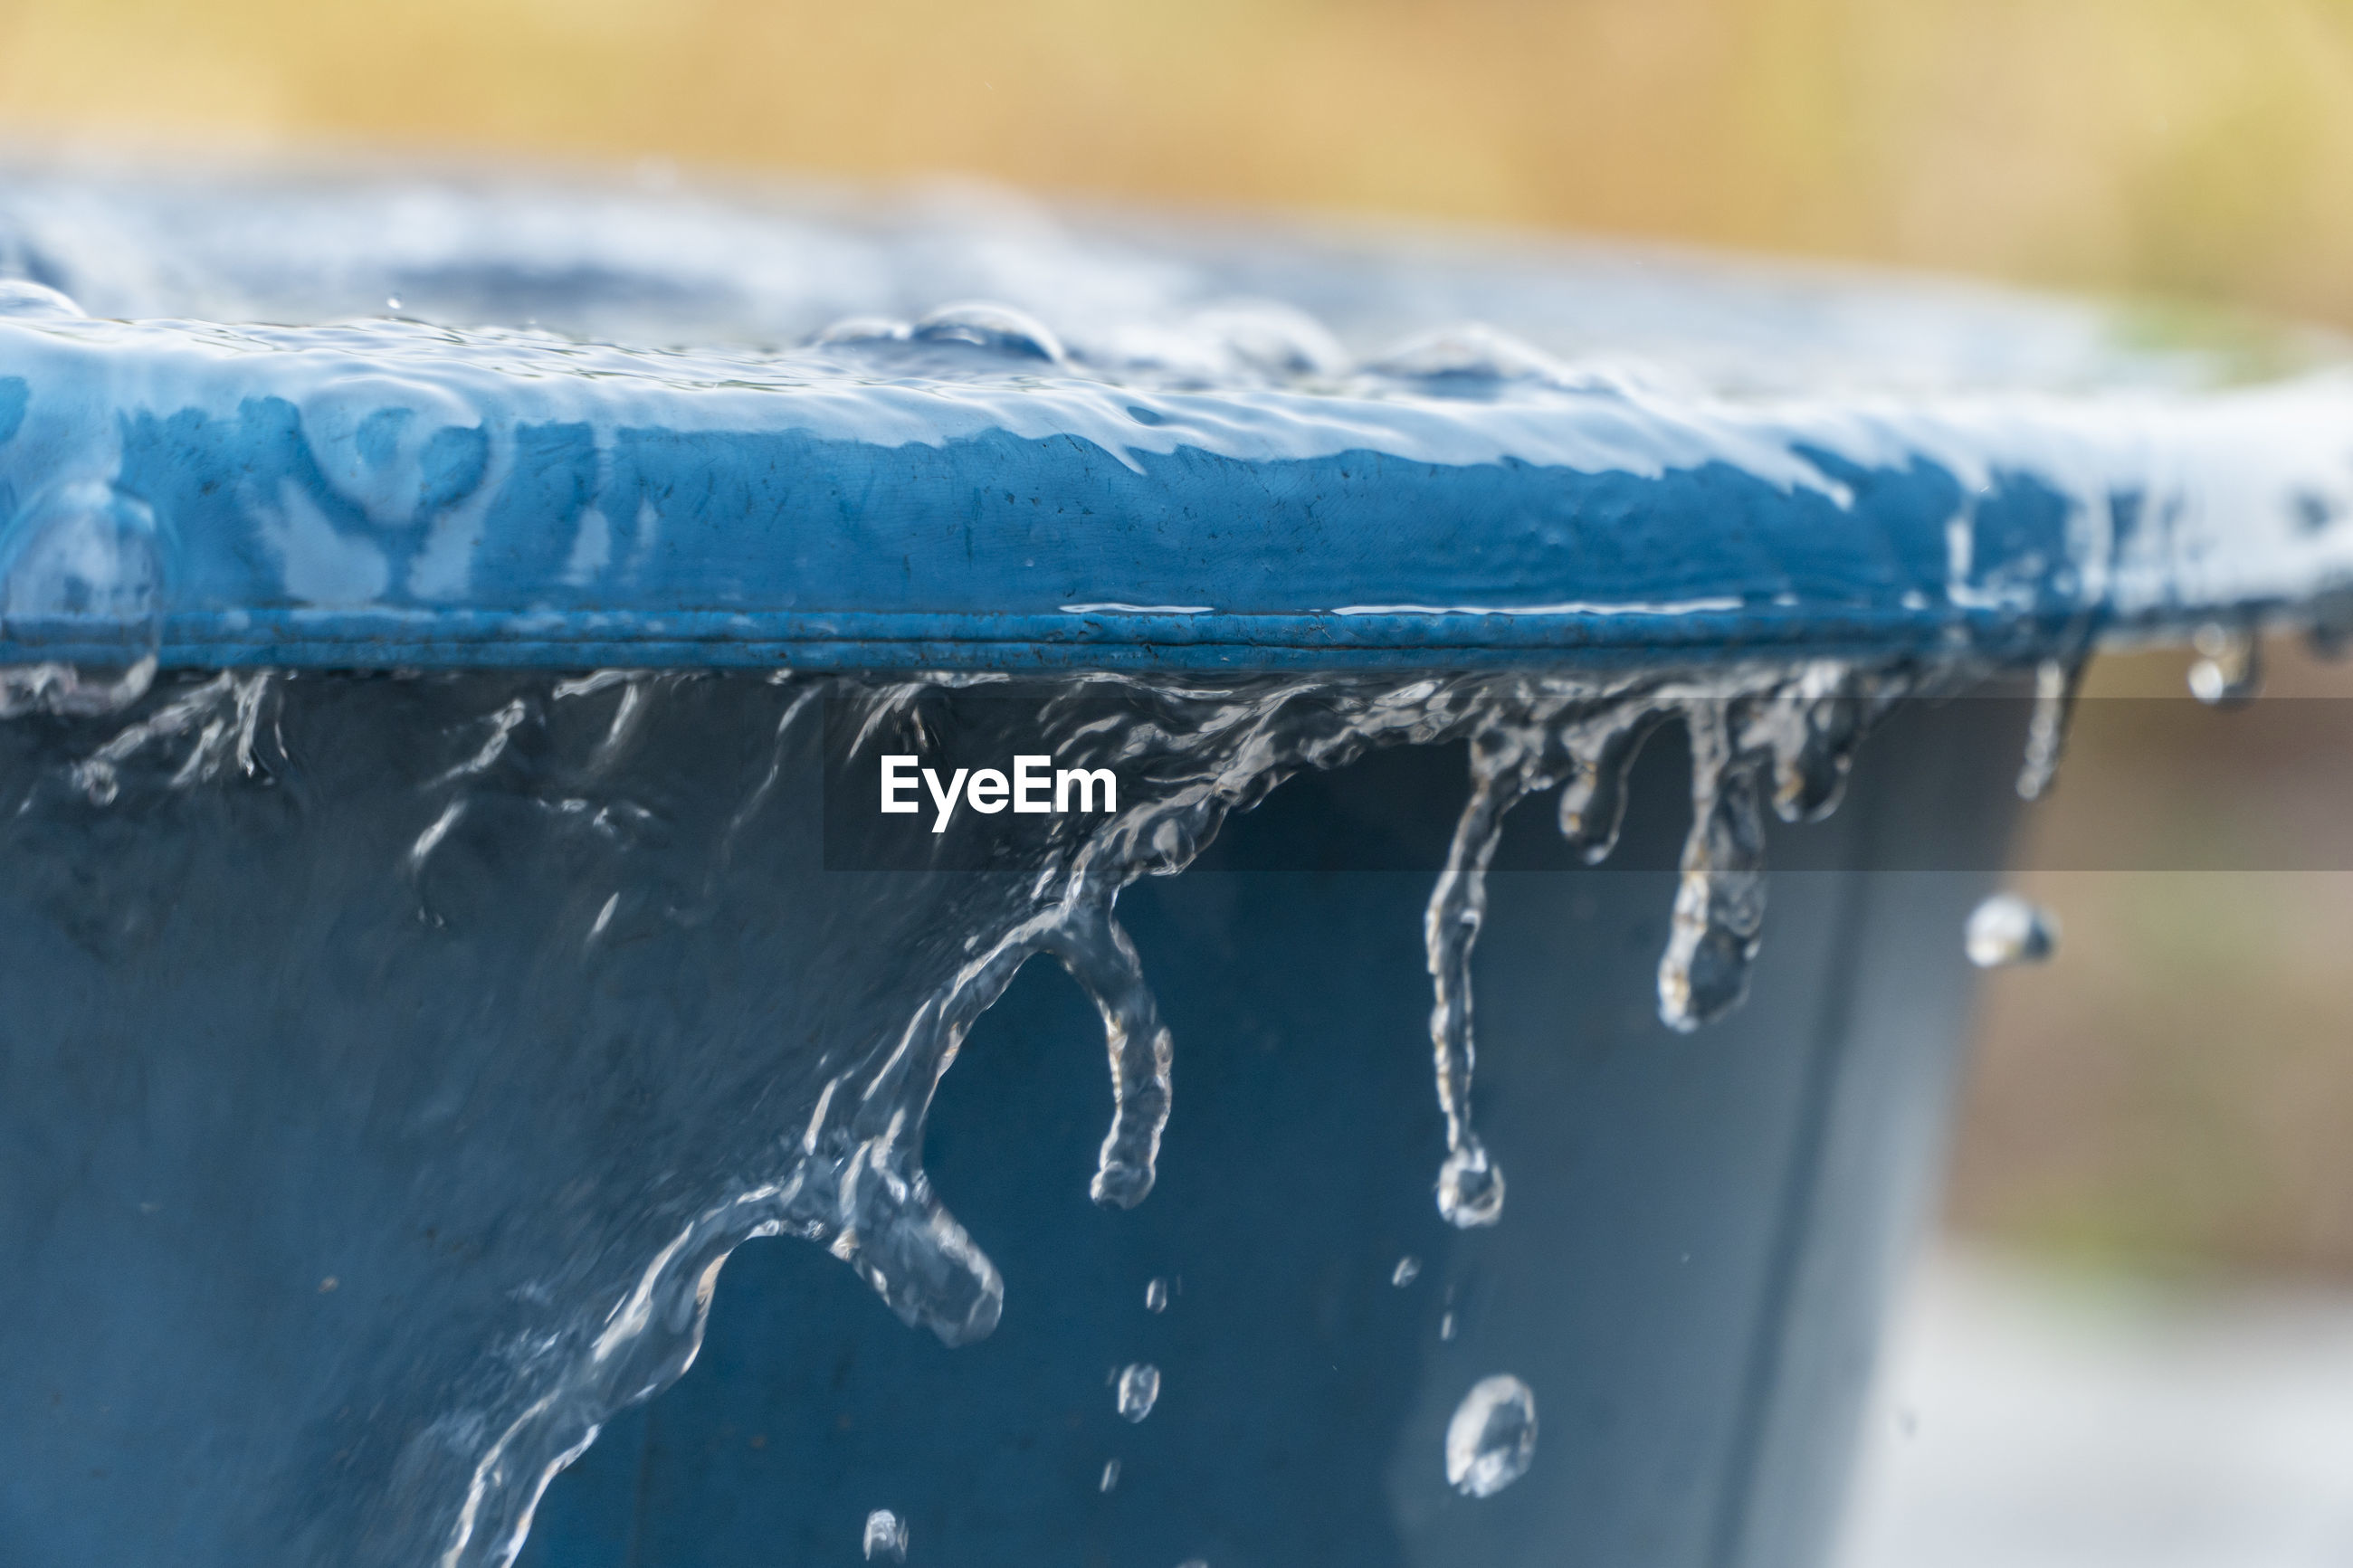 CLOSE-UP OF FROZEN WATER IN WINTER